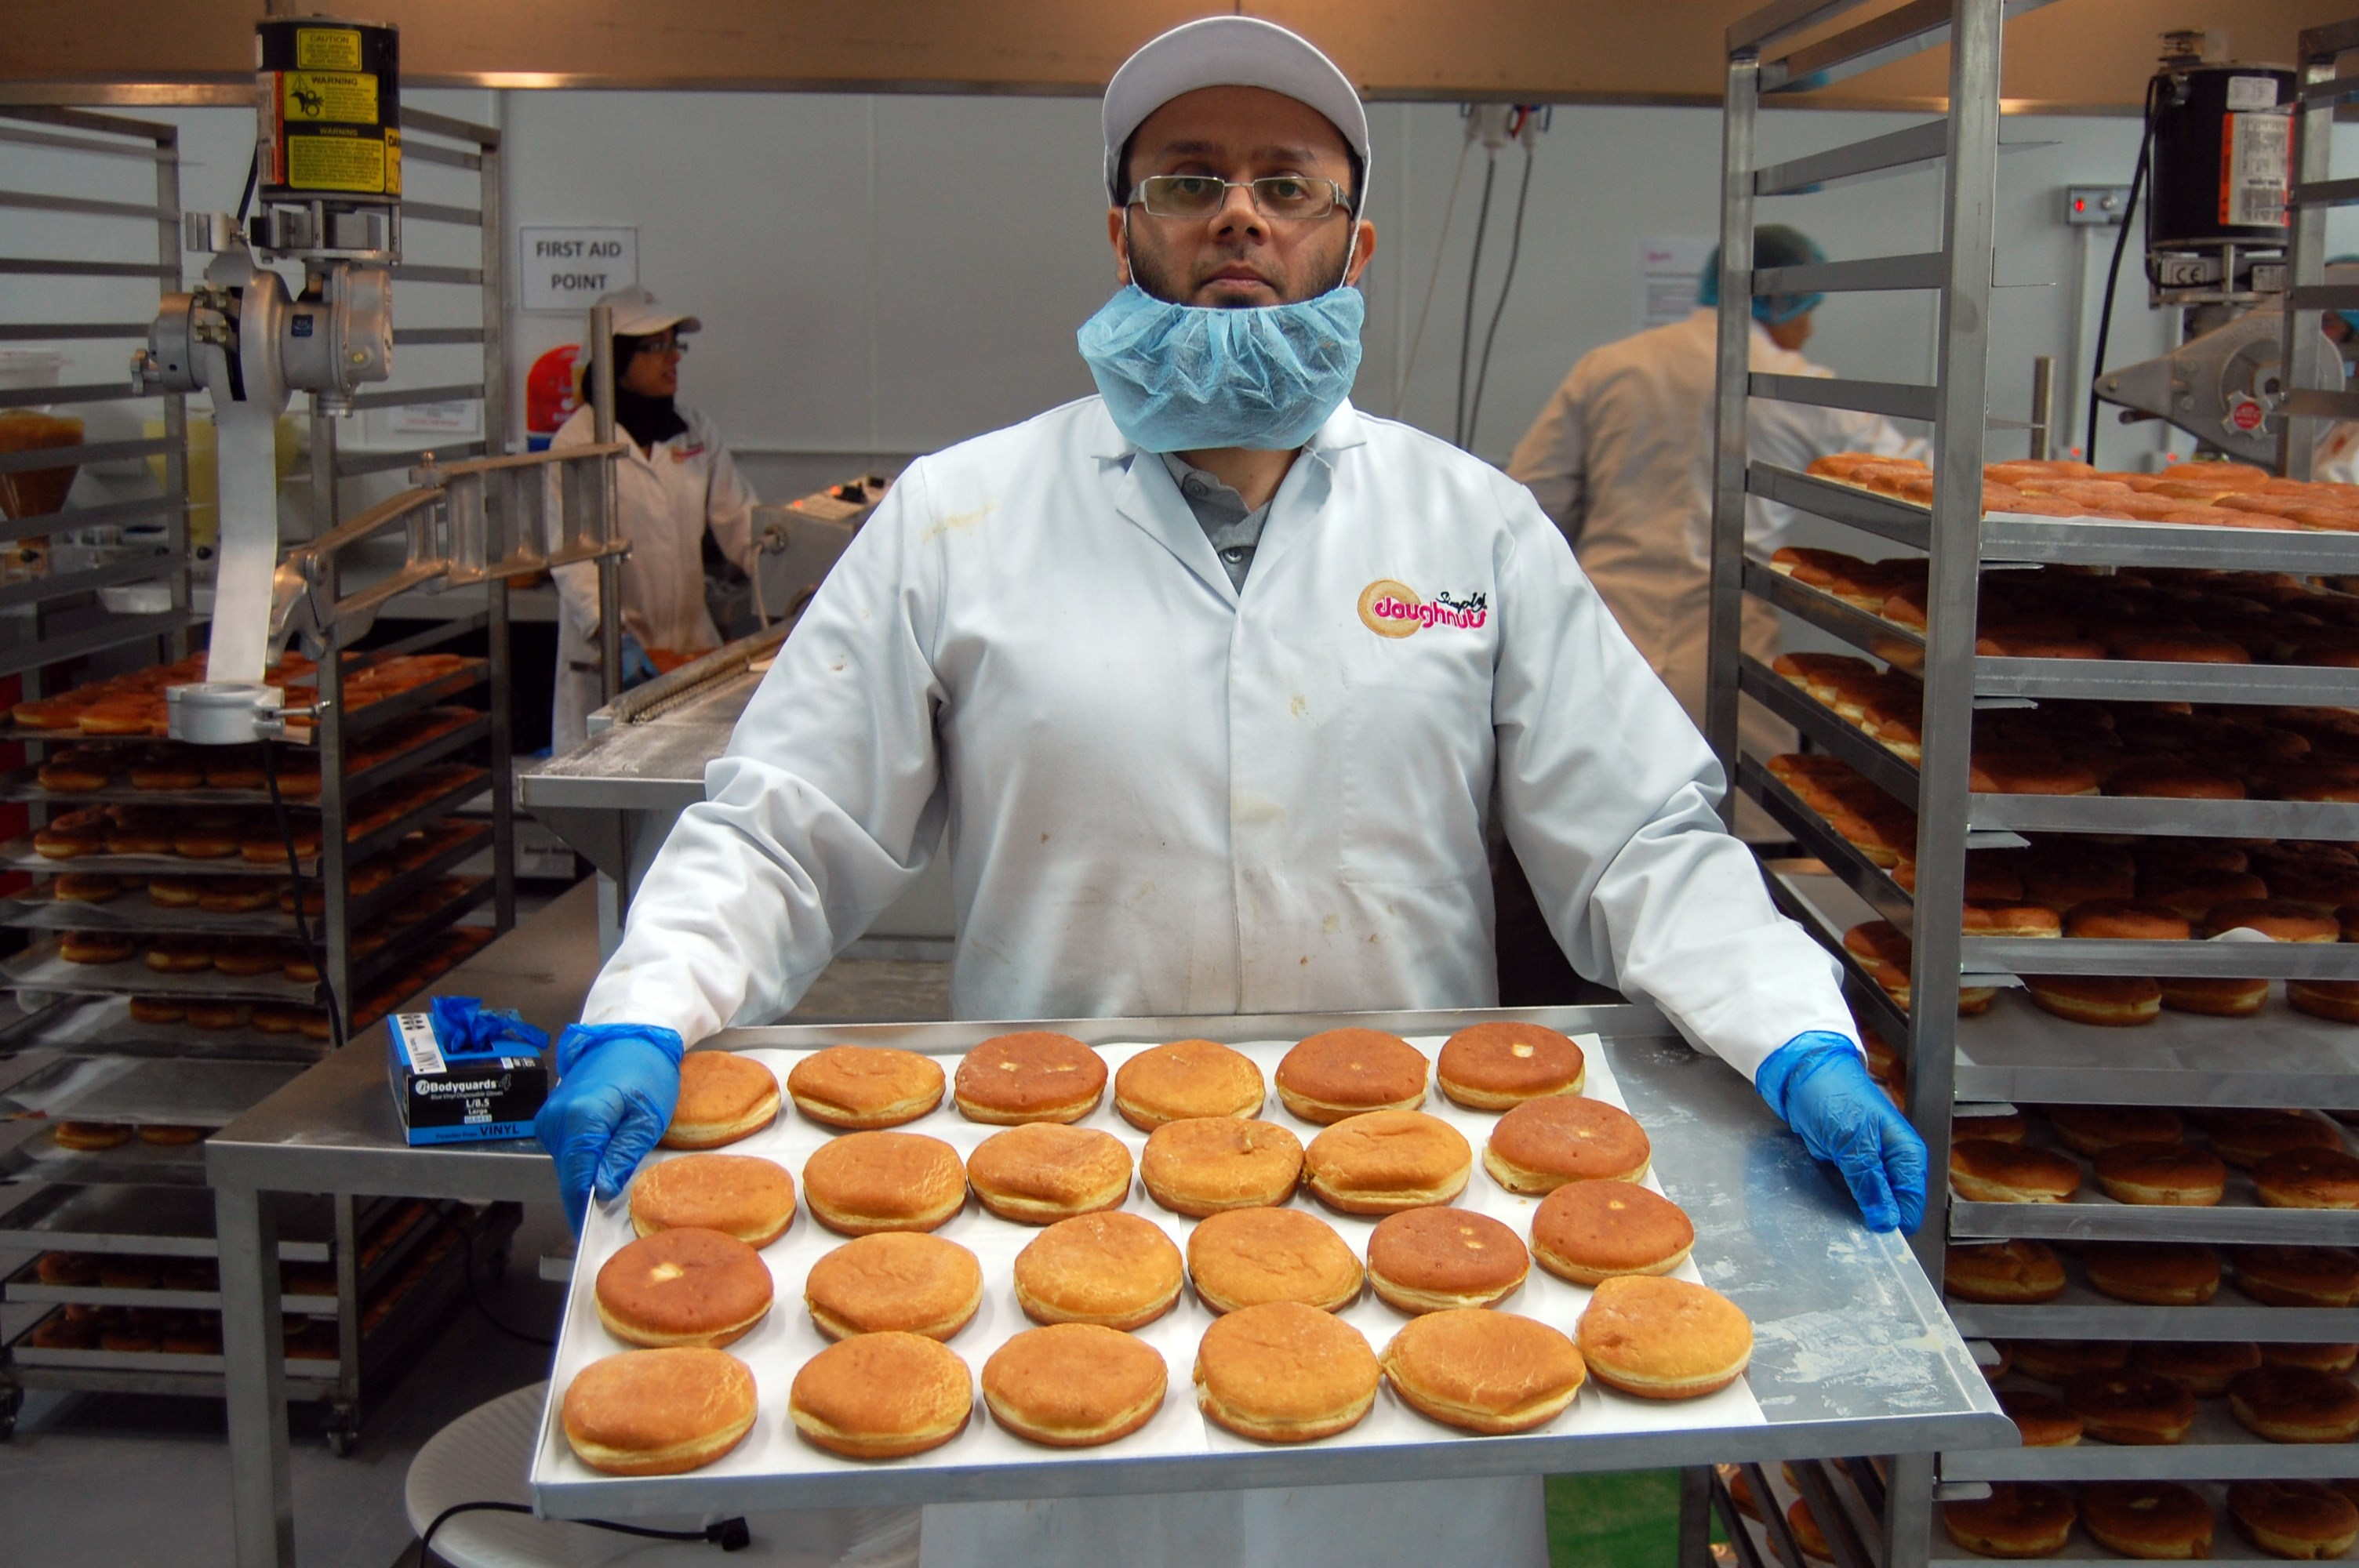 Lean manufacturing for Simply Doughnuts